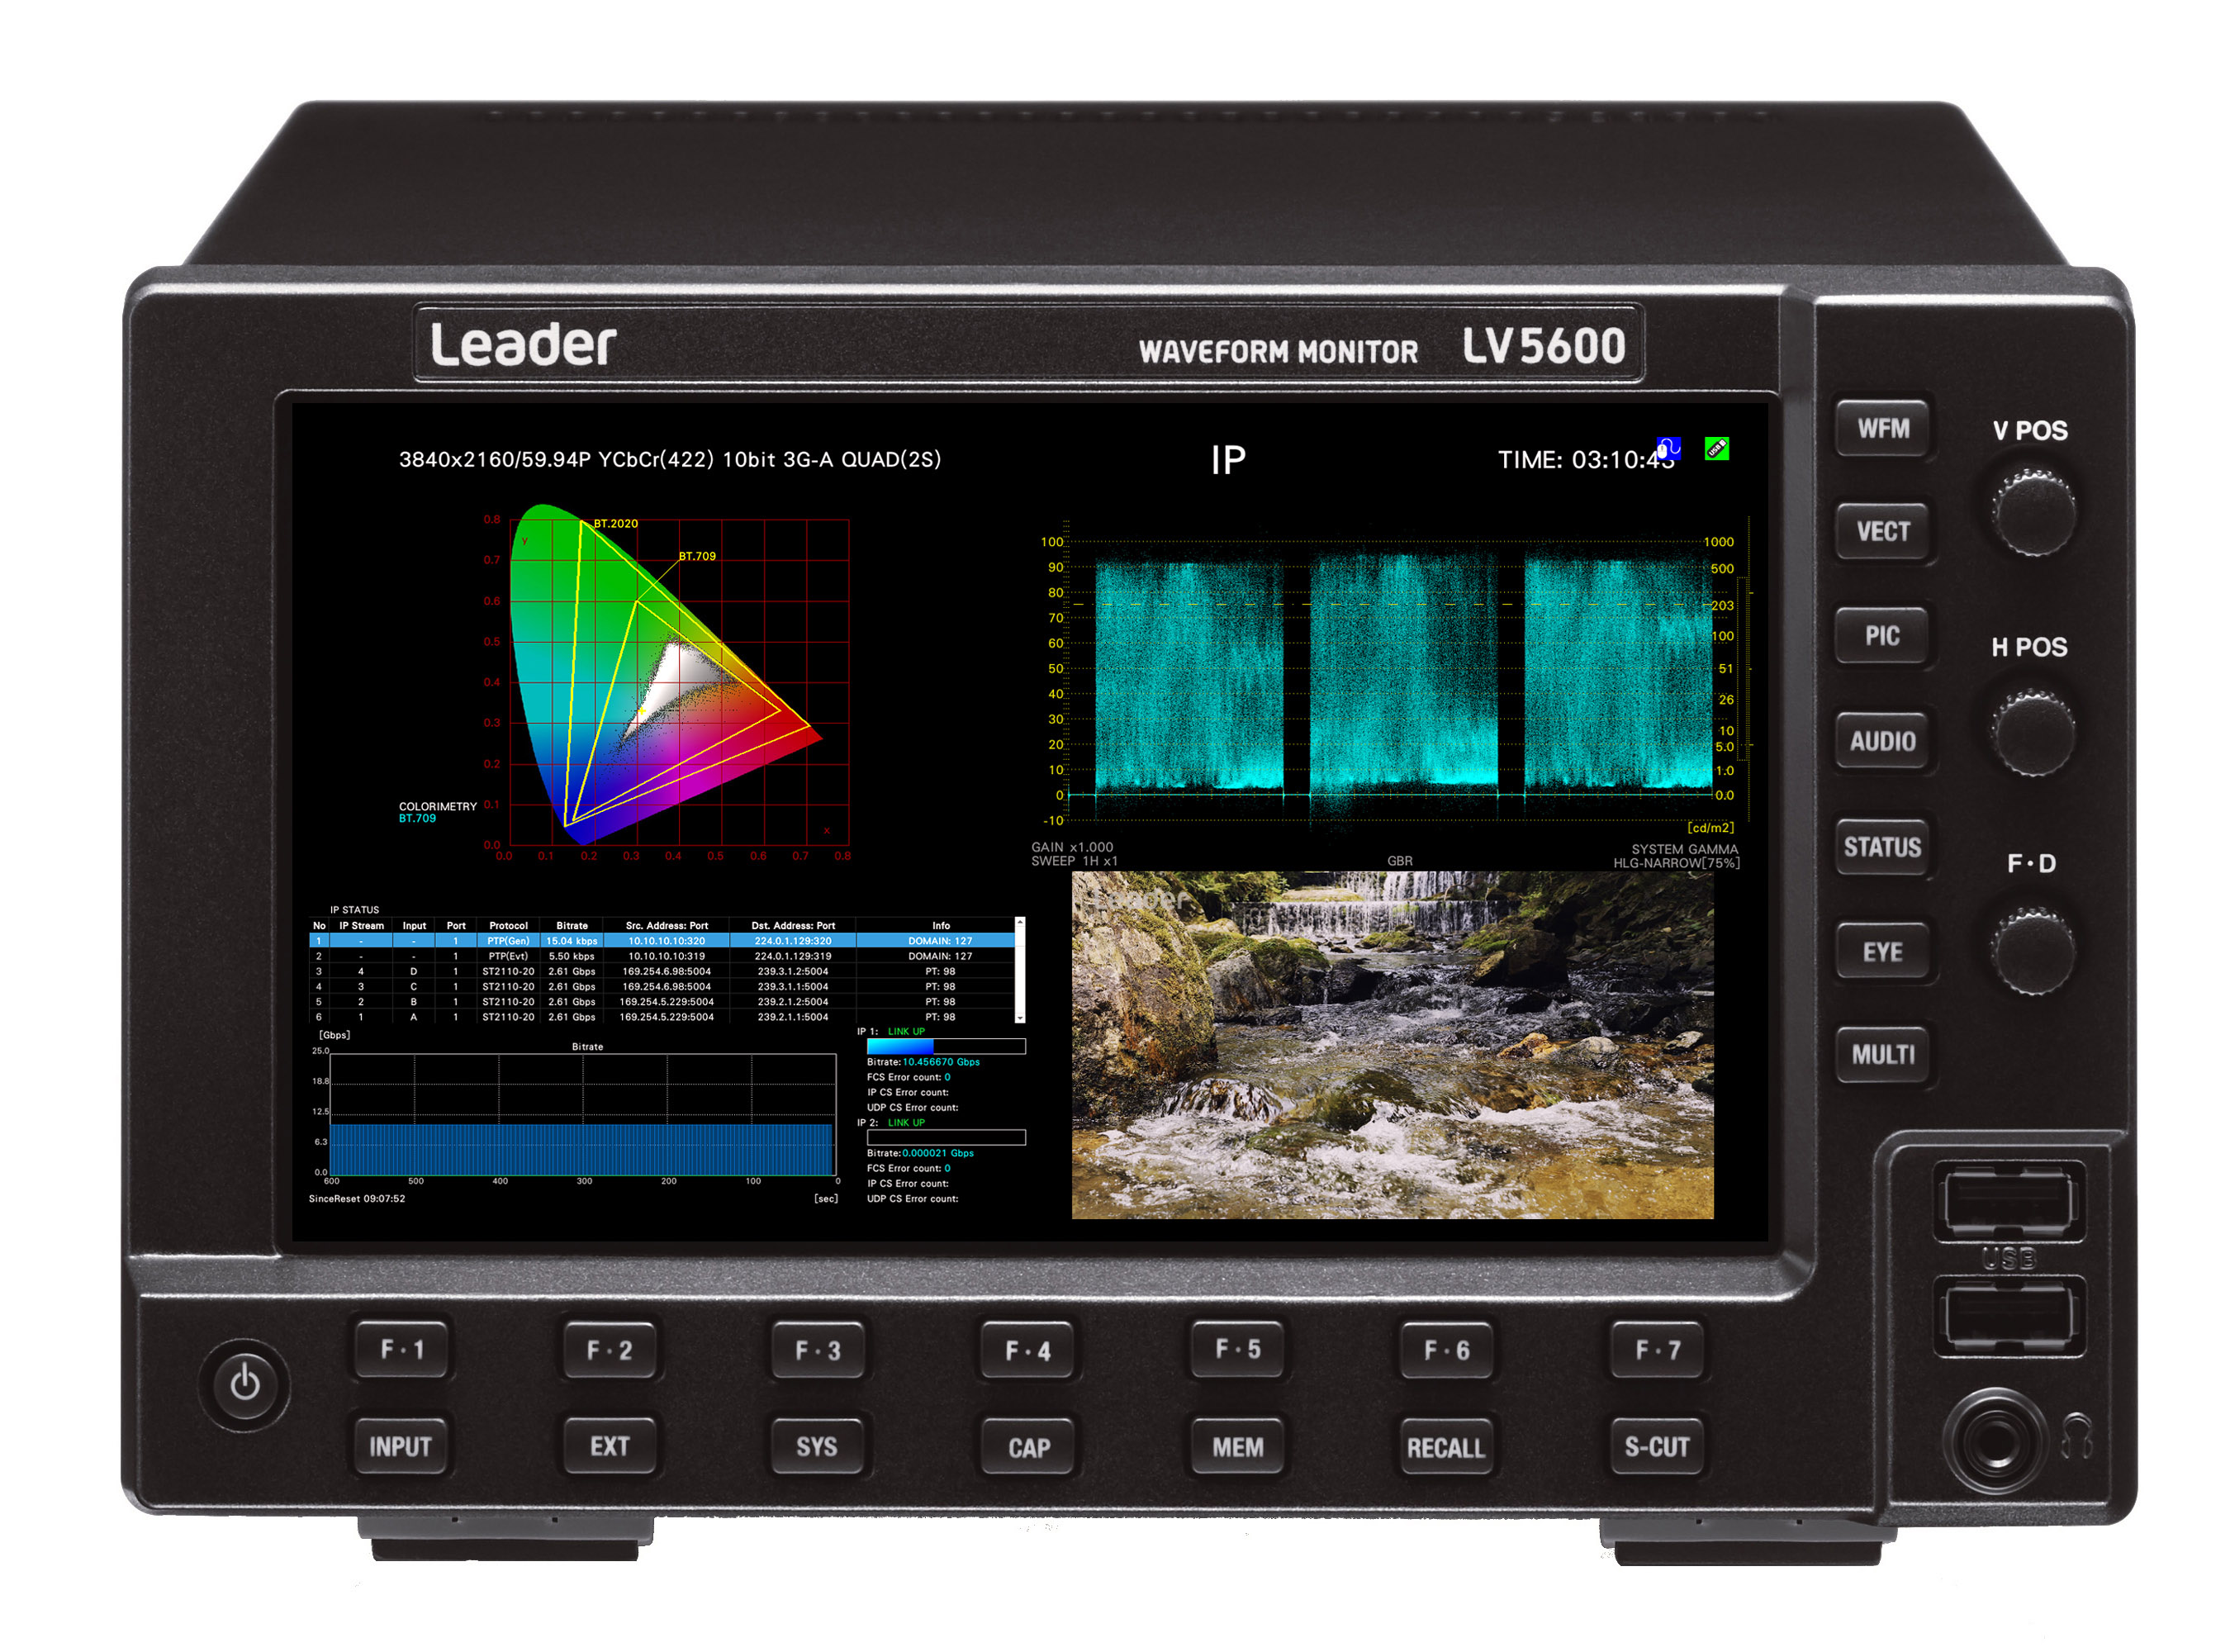 Leader Previews New 25 GbE Options for LV560 Waveform